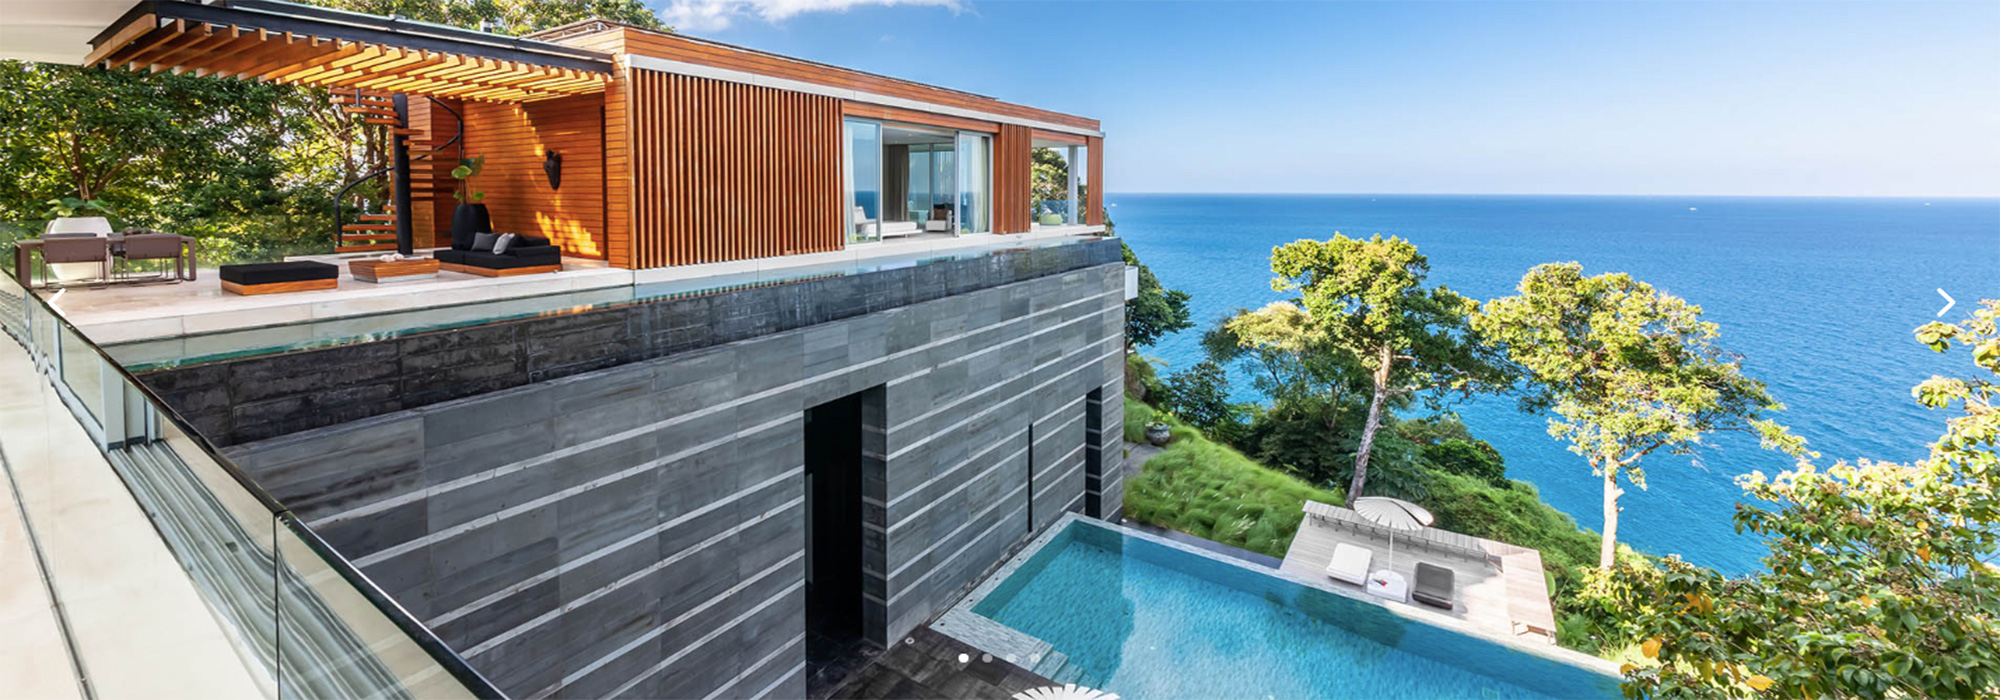 Luxury Villa for sale Phuket. Ocean Front